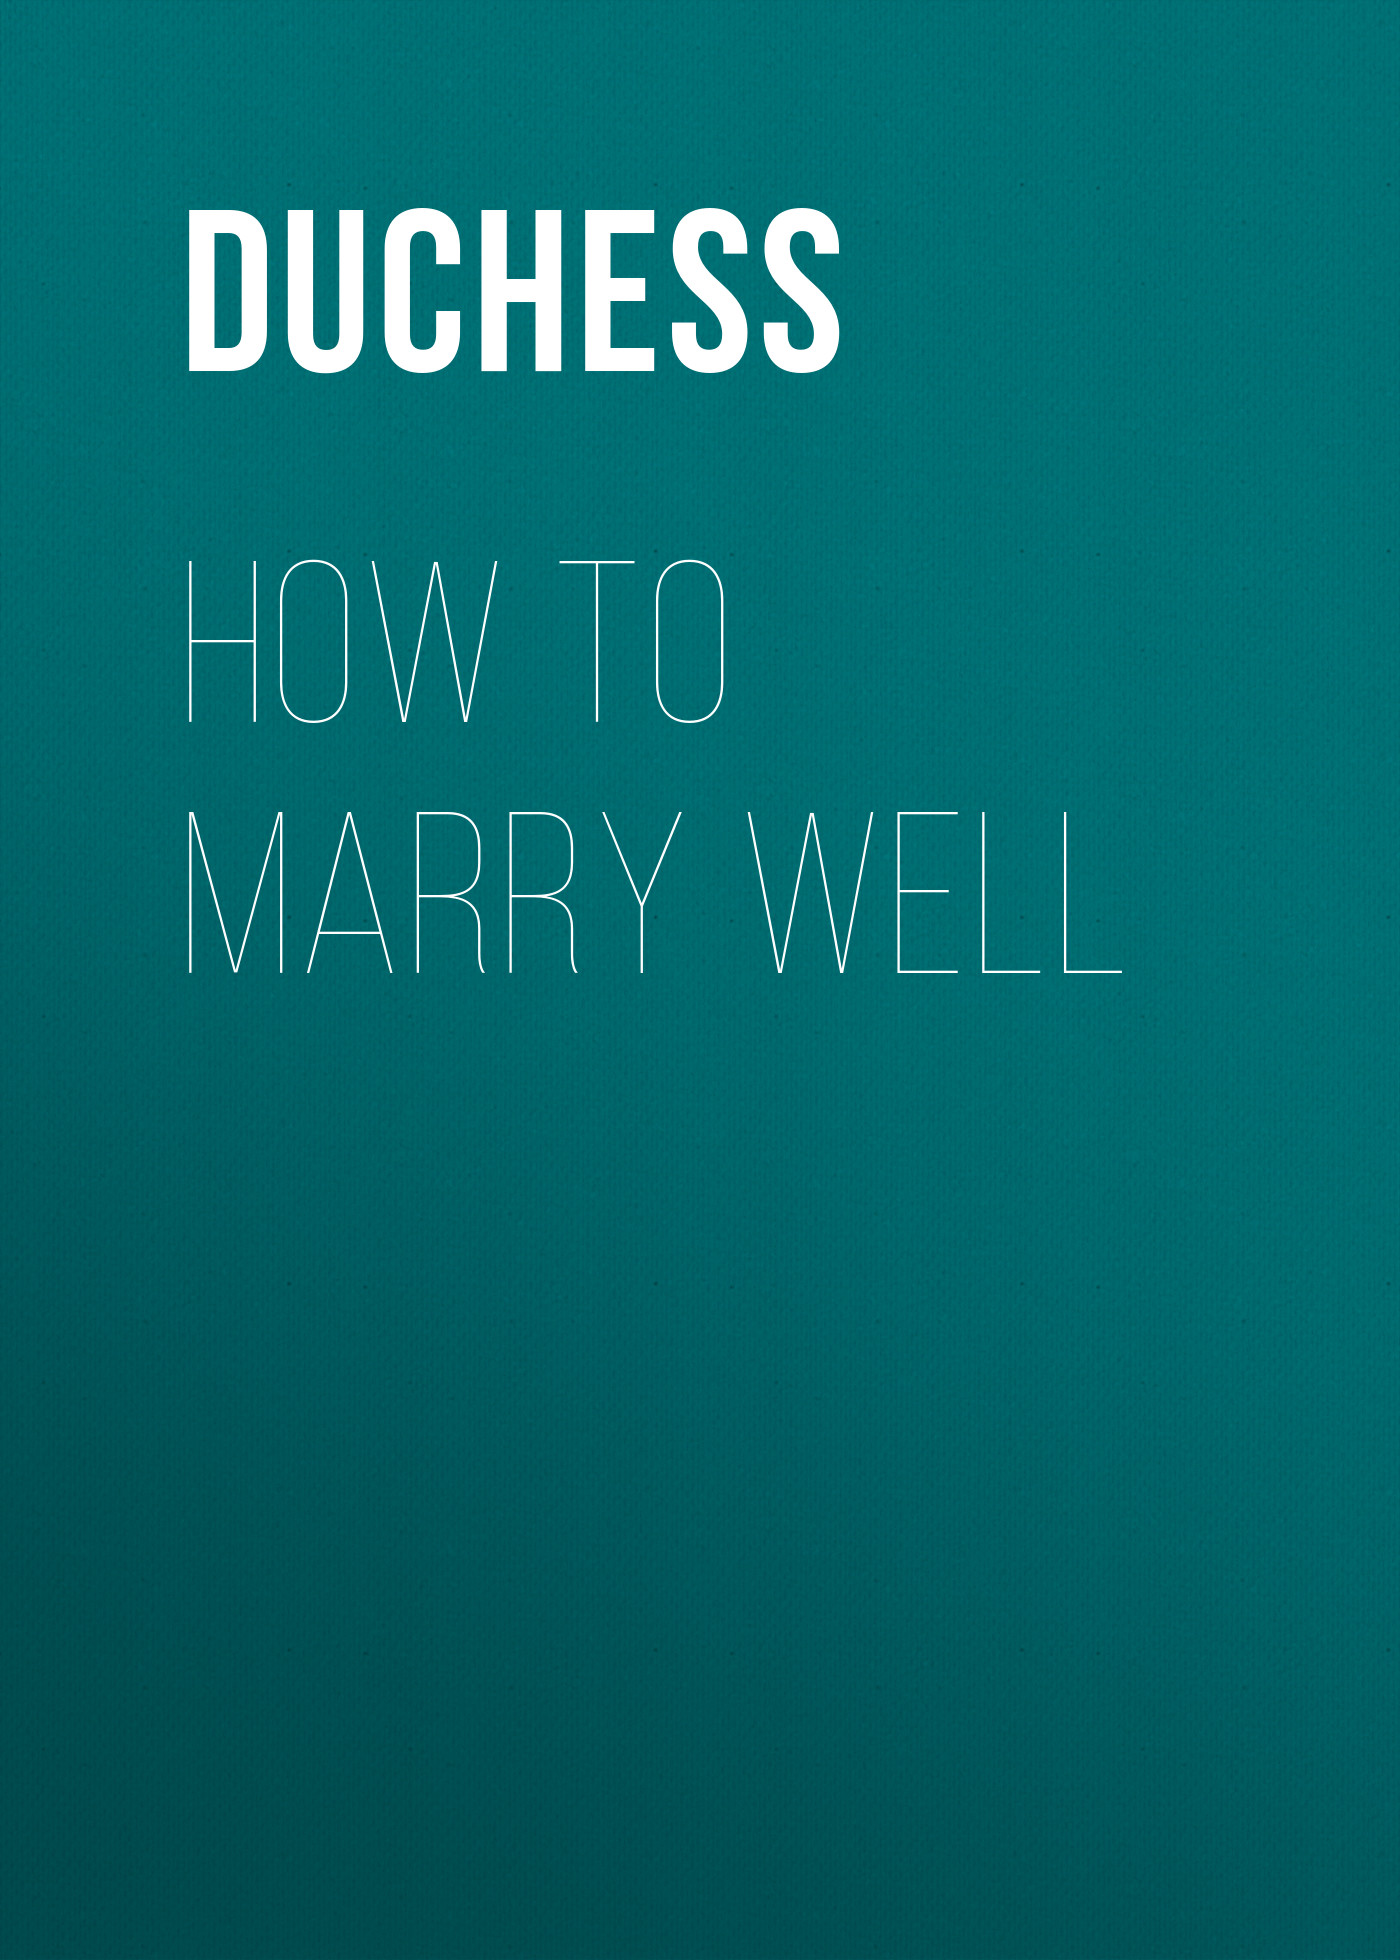 Duchess How to Marry Well duchess mrs geoffrey